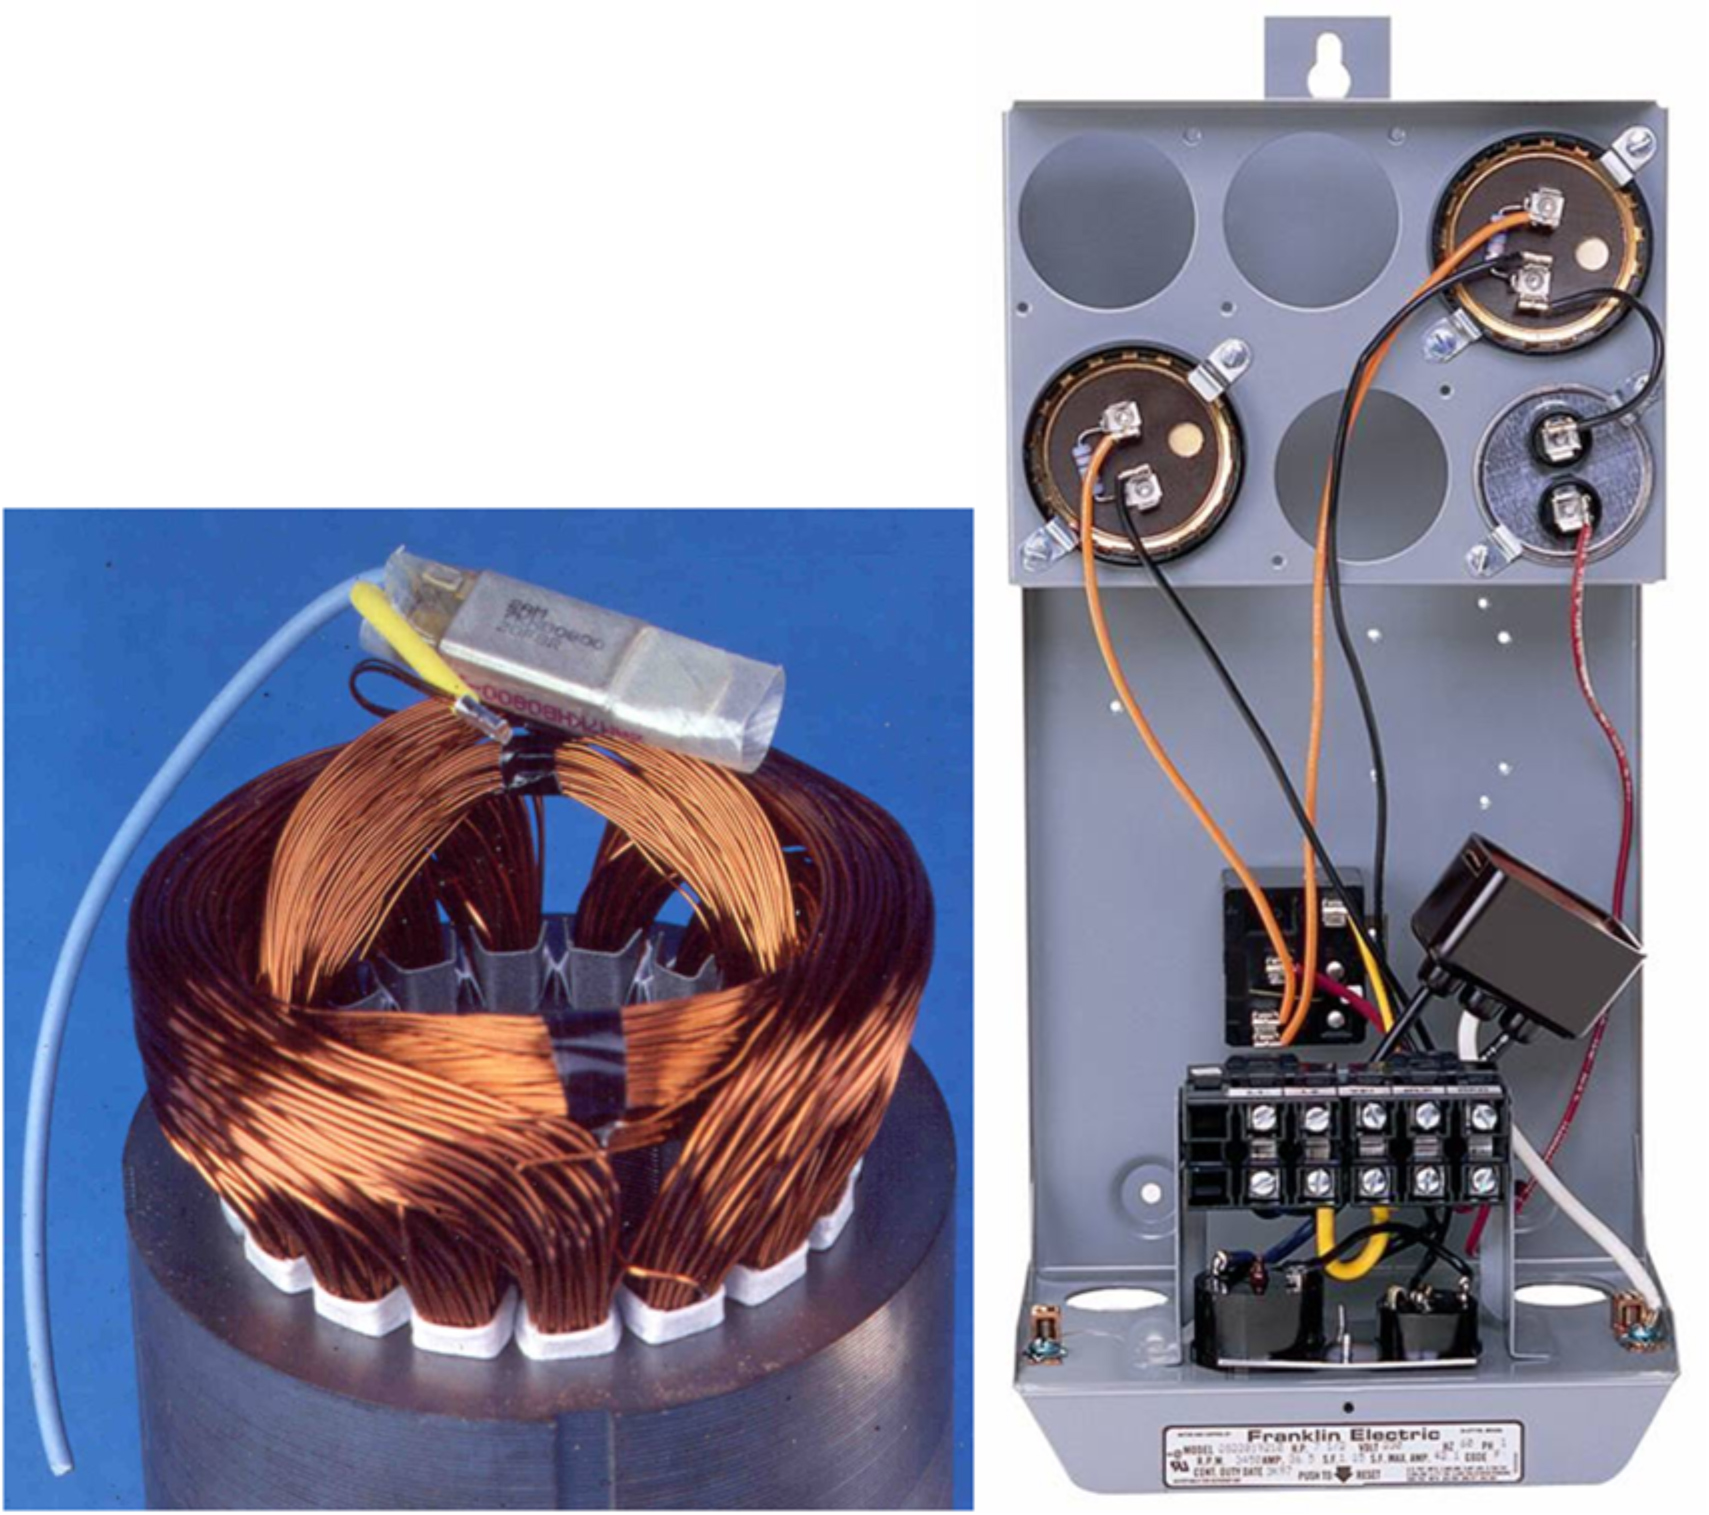 Franklin Electric Submersible Motor Control Wiring Diagram